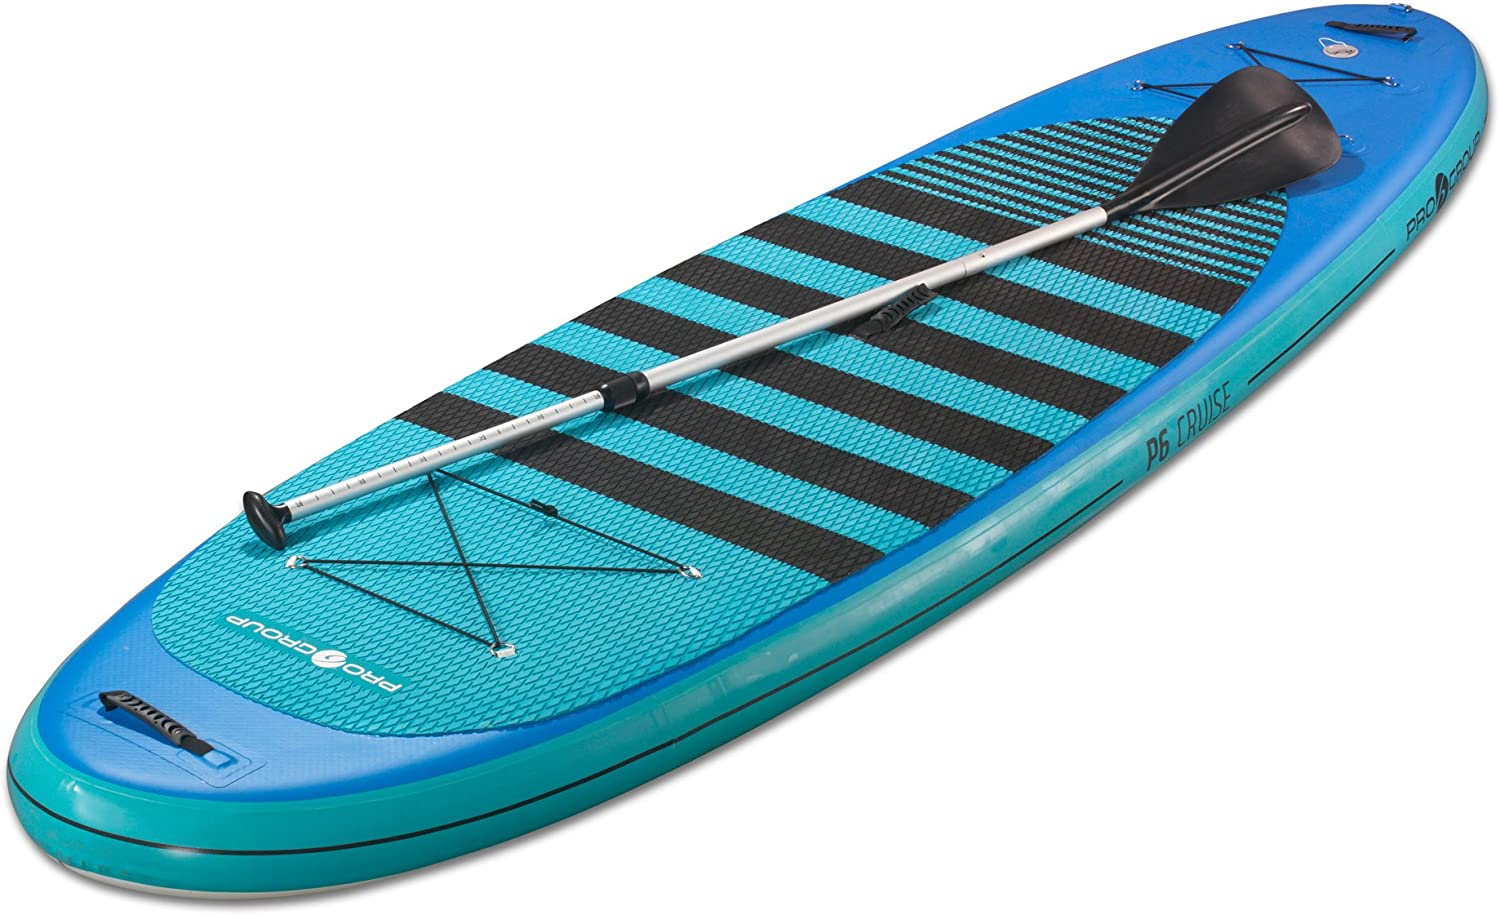 Pro 6, P6-Cruise, ISUP - Inflatable Stand-Up Paddle Board 112